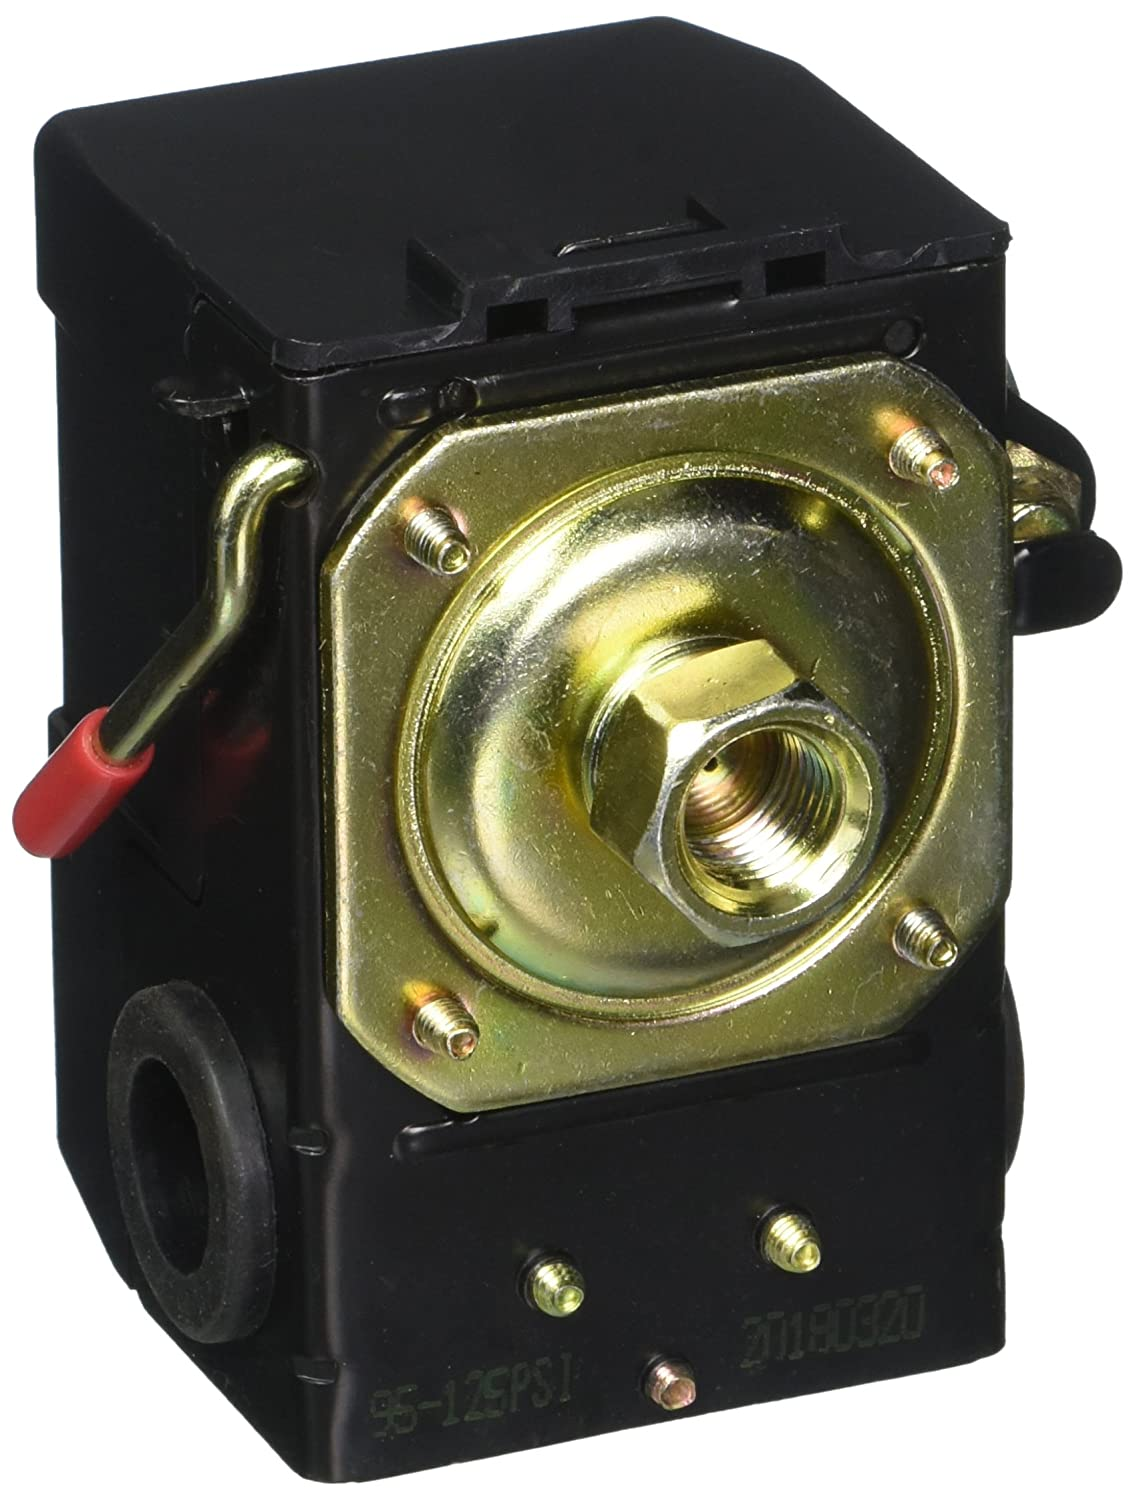 New H D Pressure Switch For Air Compressor 95 125 W Unloader Details About Viair 85 105 Psi Relay Accessories